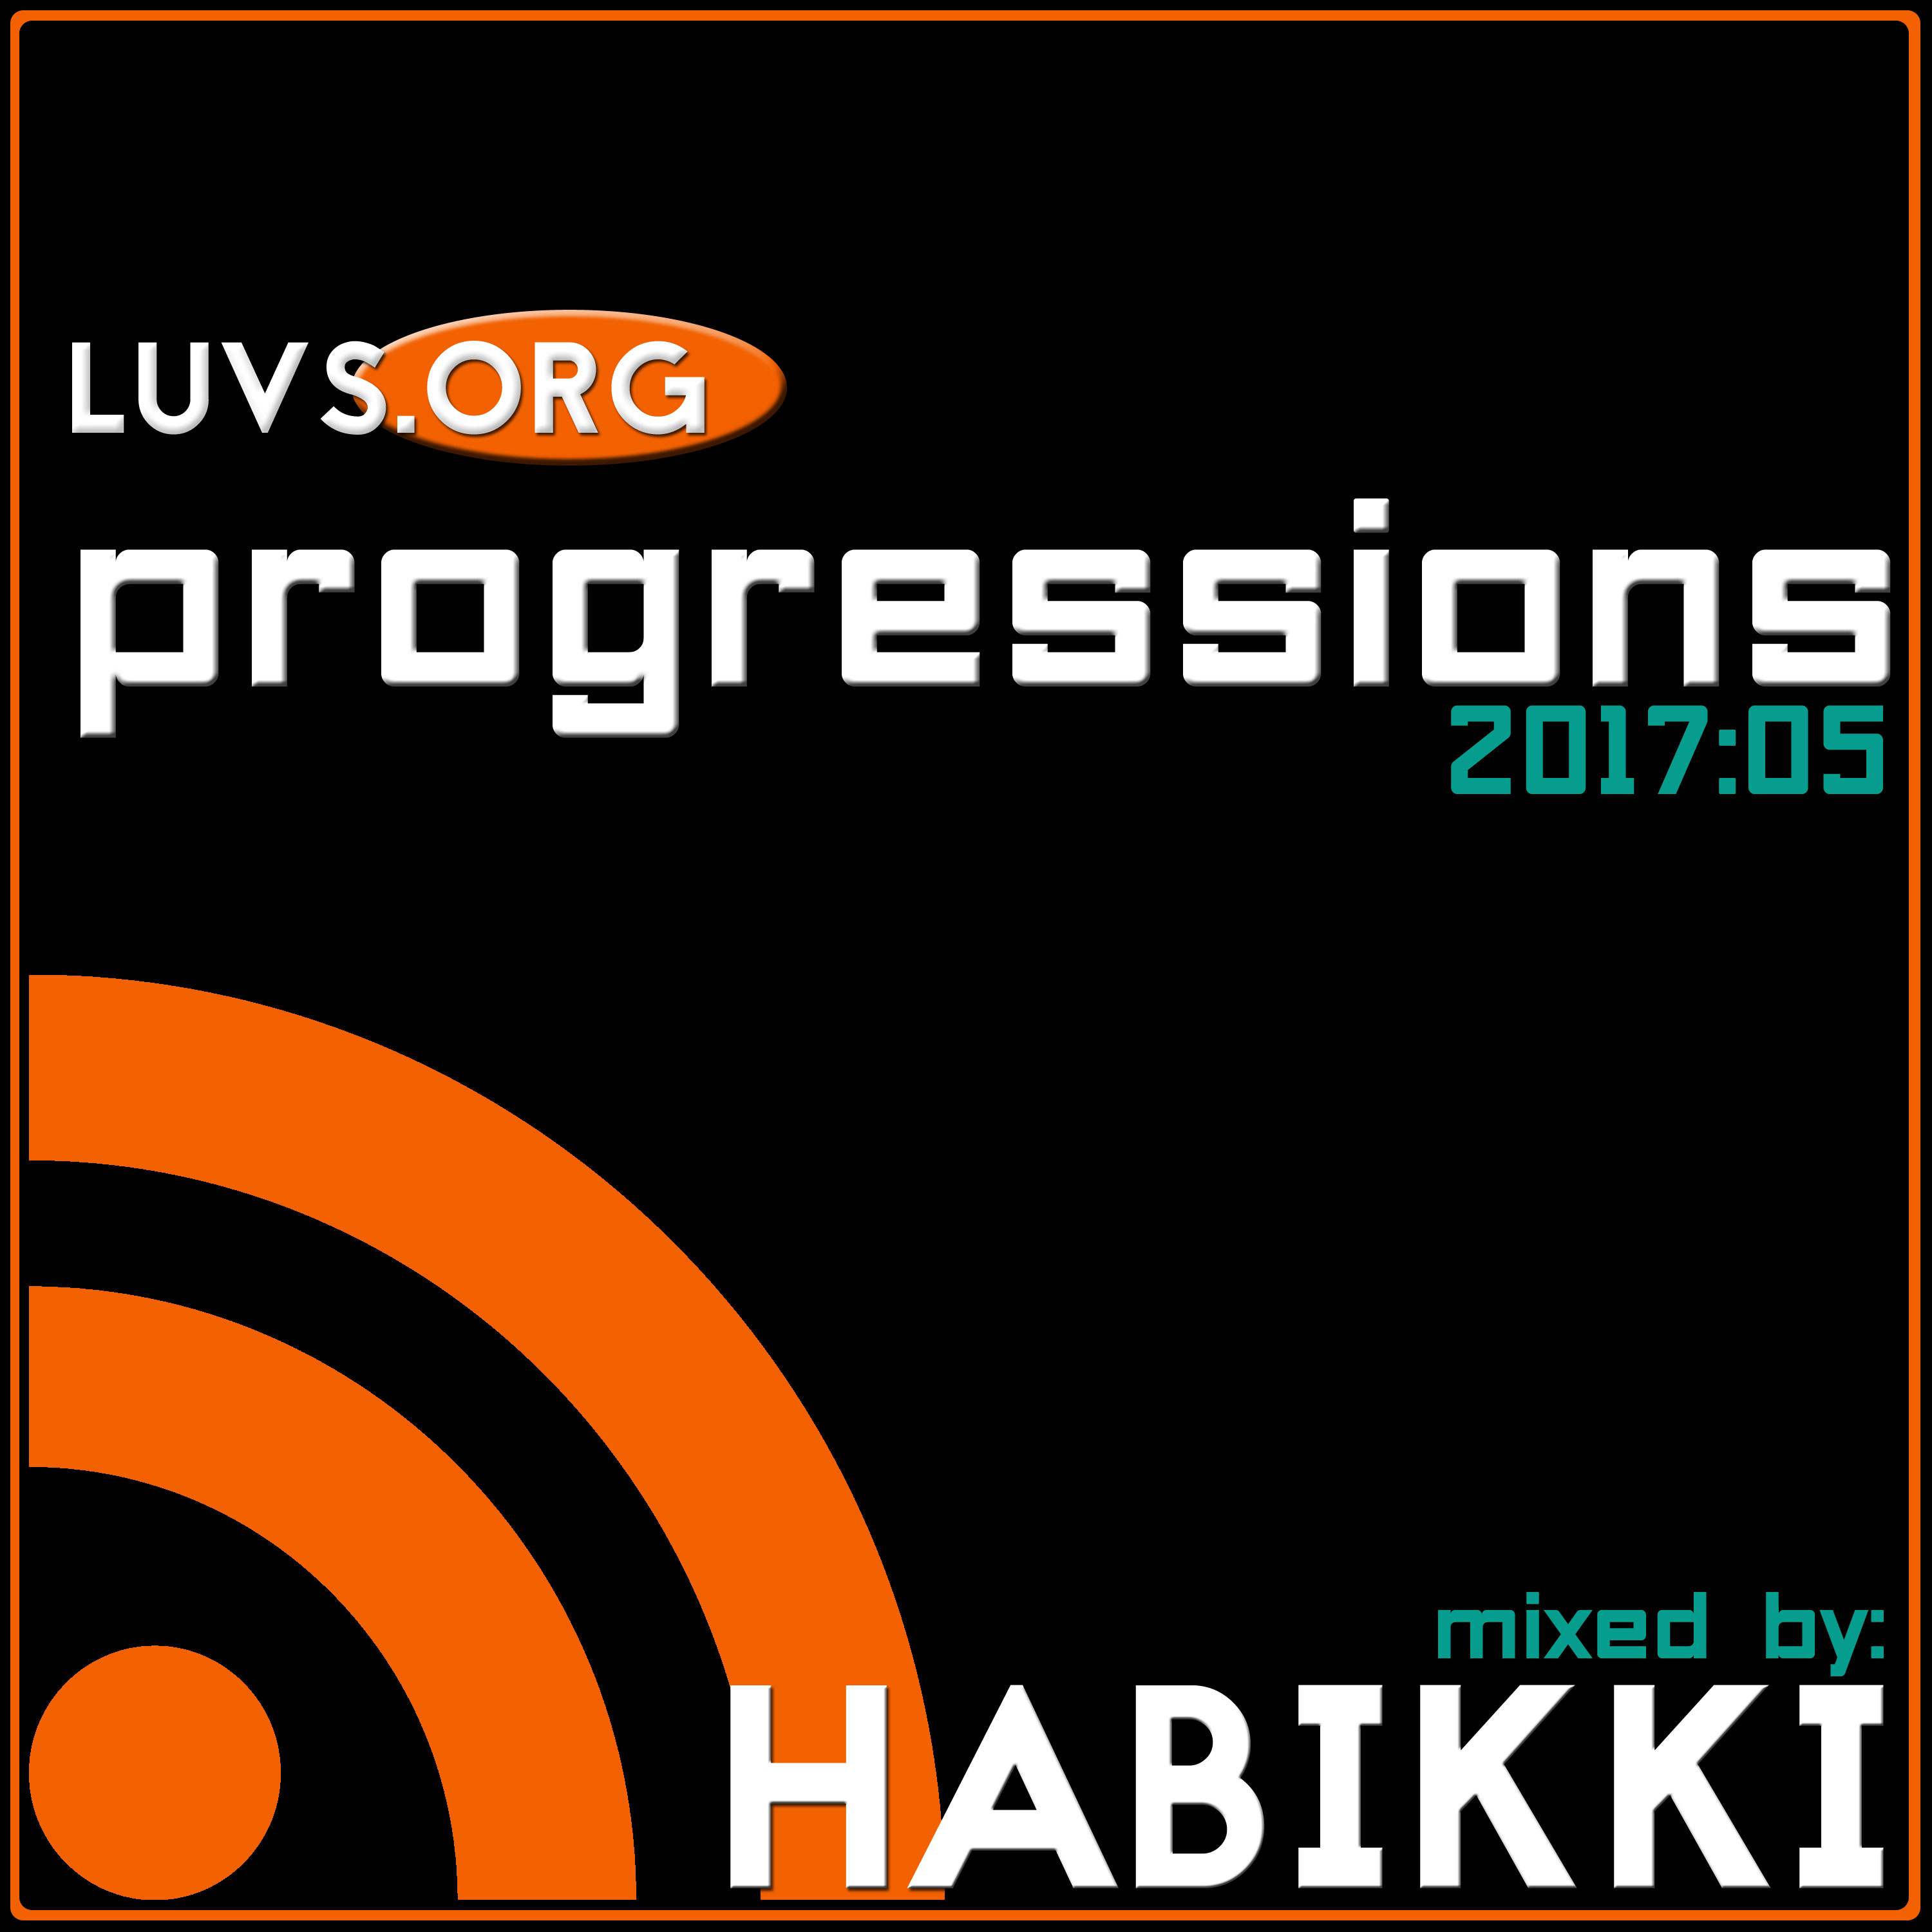 Luvs.org Sessions: [2017:05] Progressions